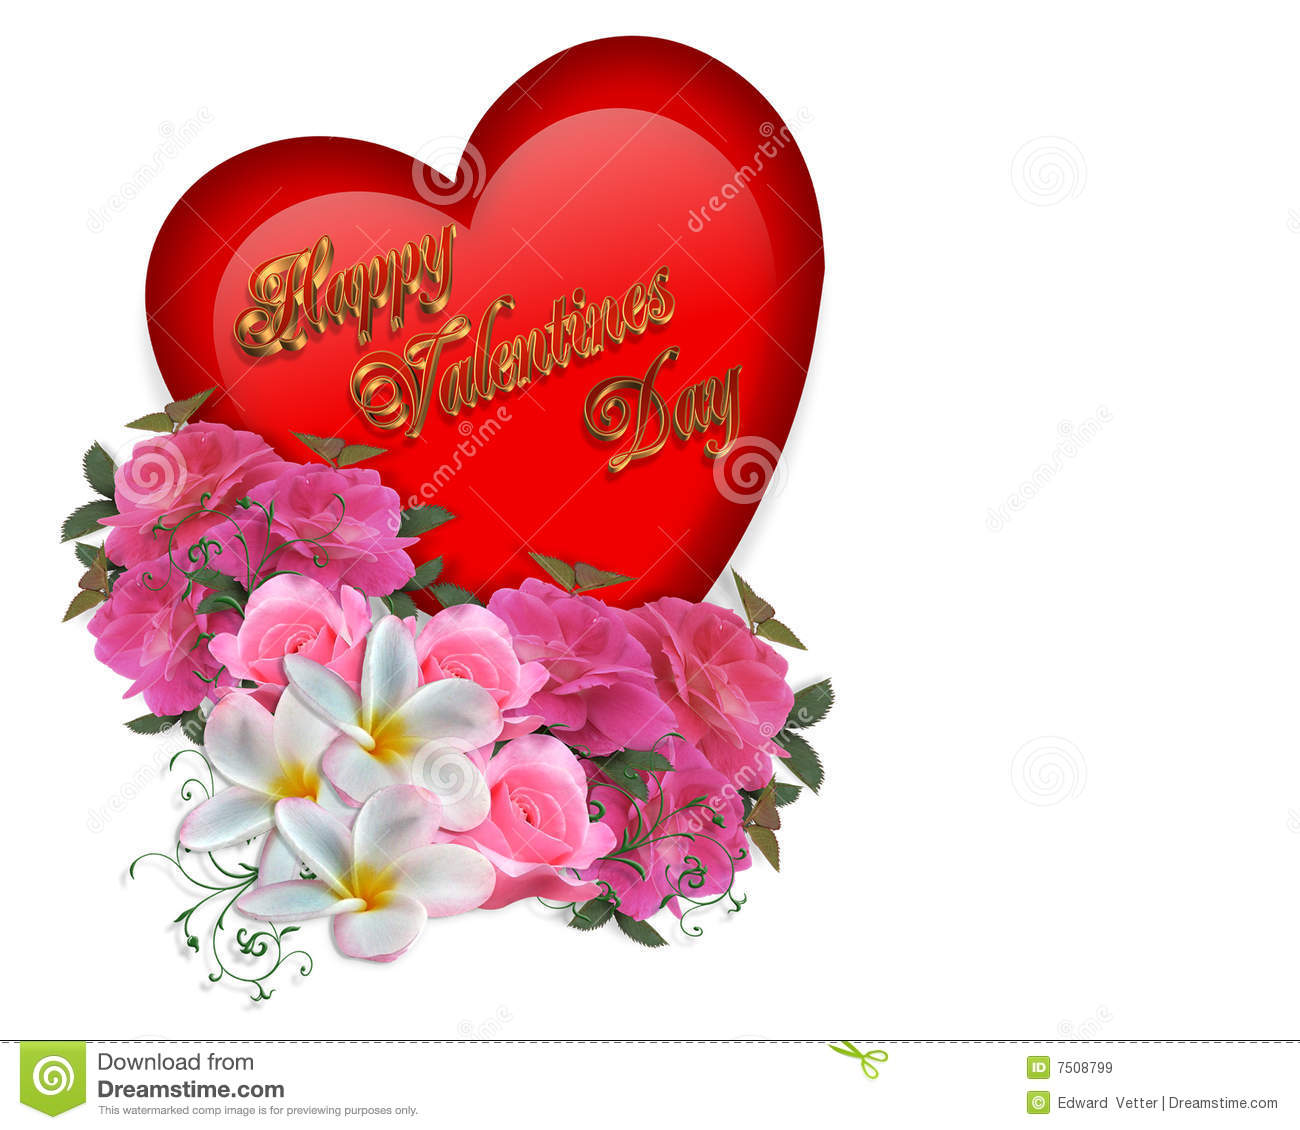 Valentine Heart And Flowers Royalty Free Stock Images - Image: 7508799